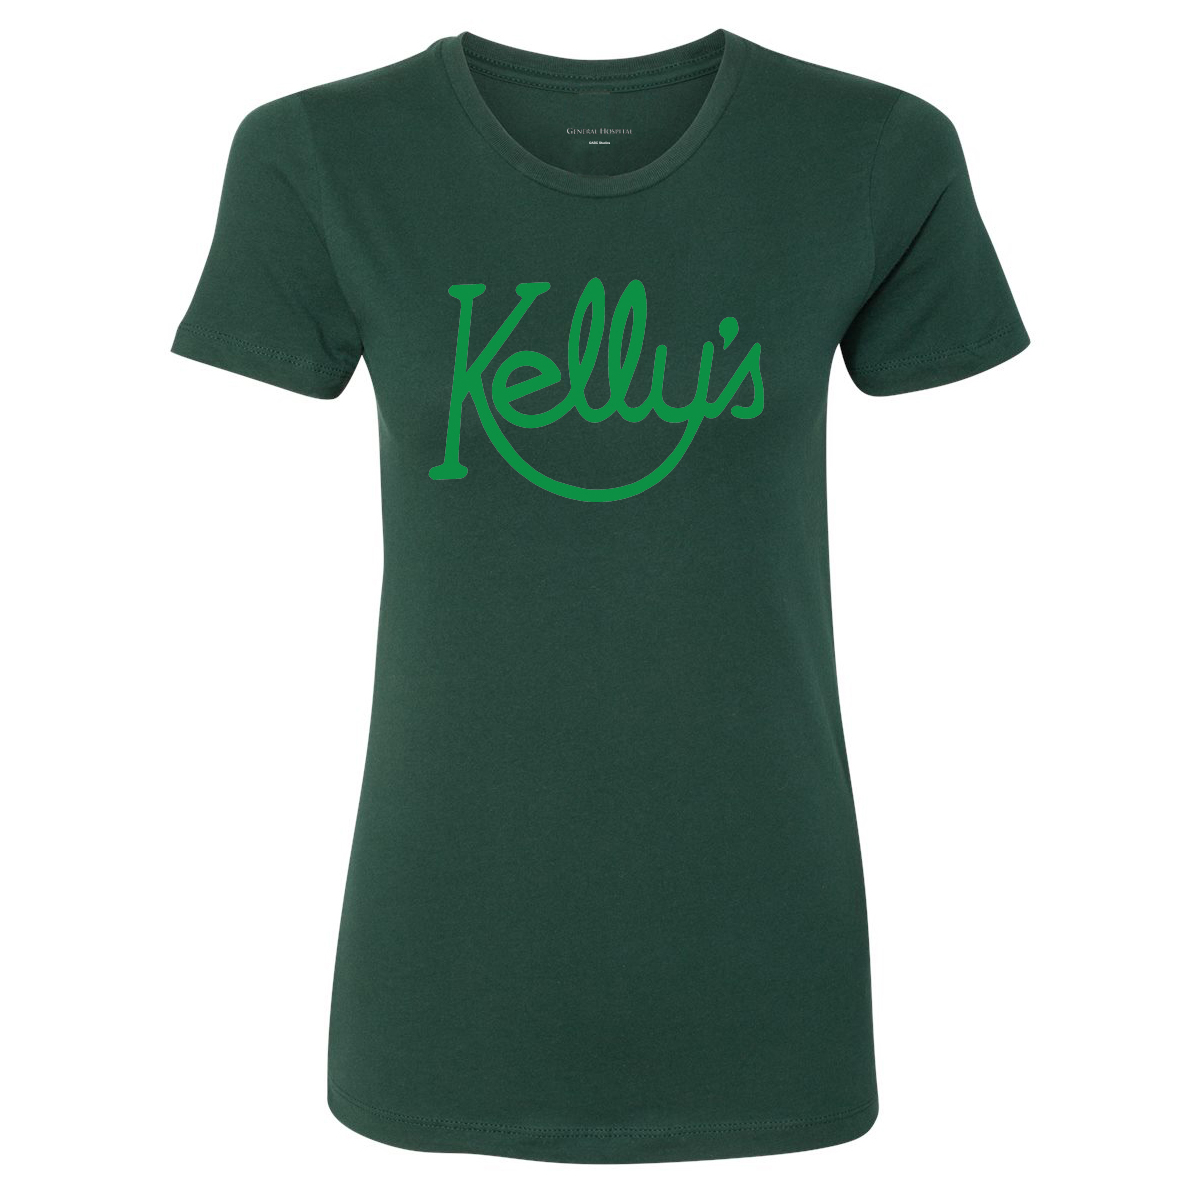 General Hospital Kelly's Women's T-Shirt